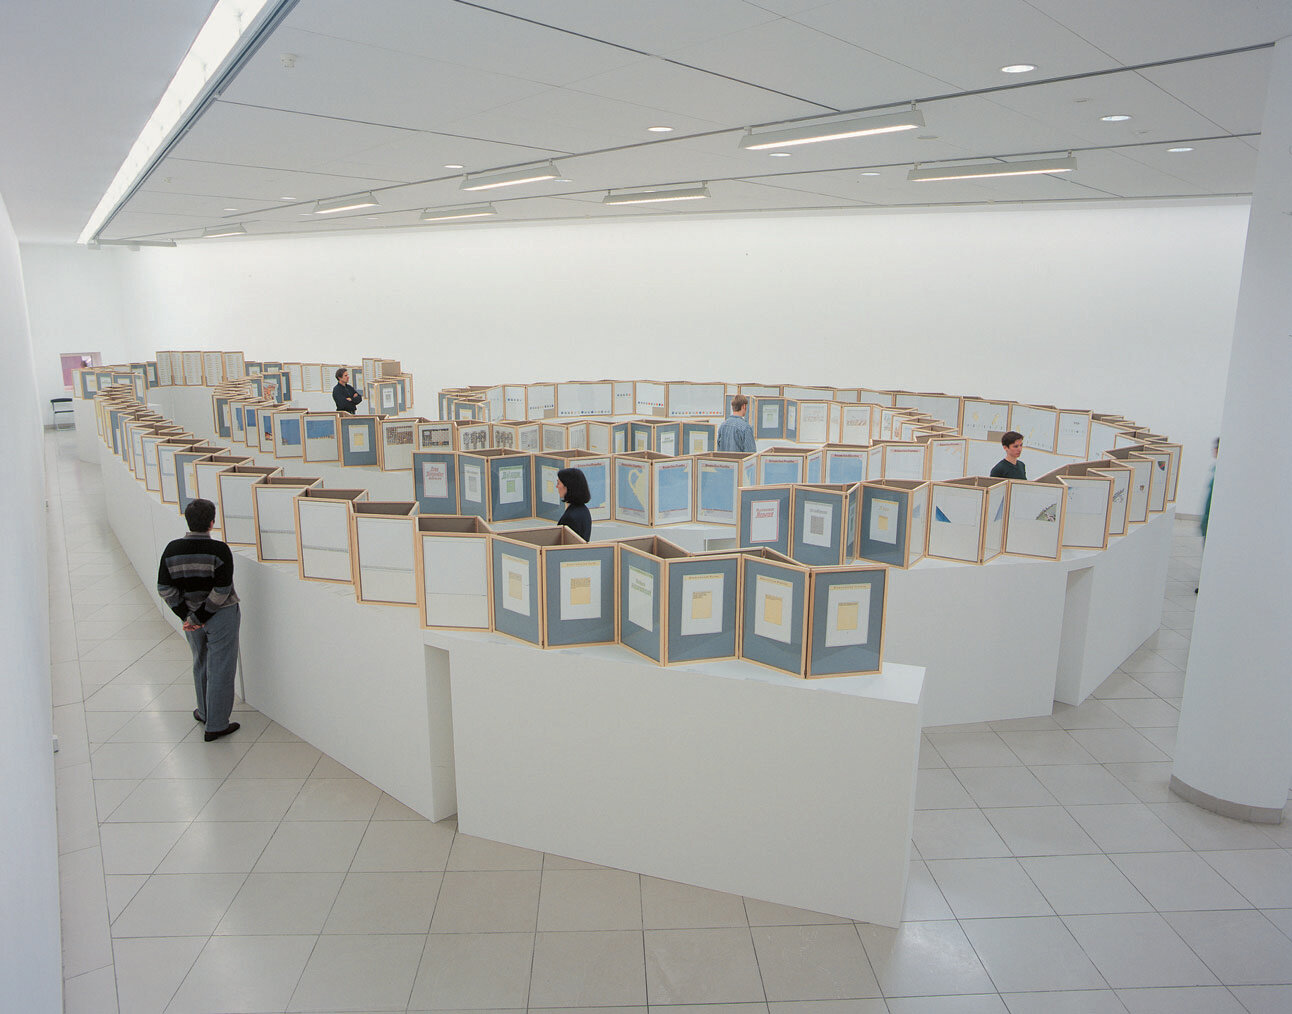 View-of-installation-Museum-für-Moderne-Kunst-Frankfurt-am-Main-1998-Photo-by-Axel-Schneider.jpg